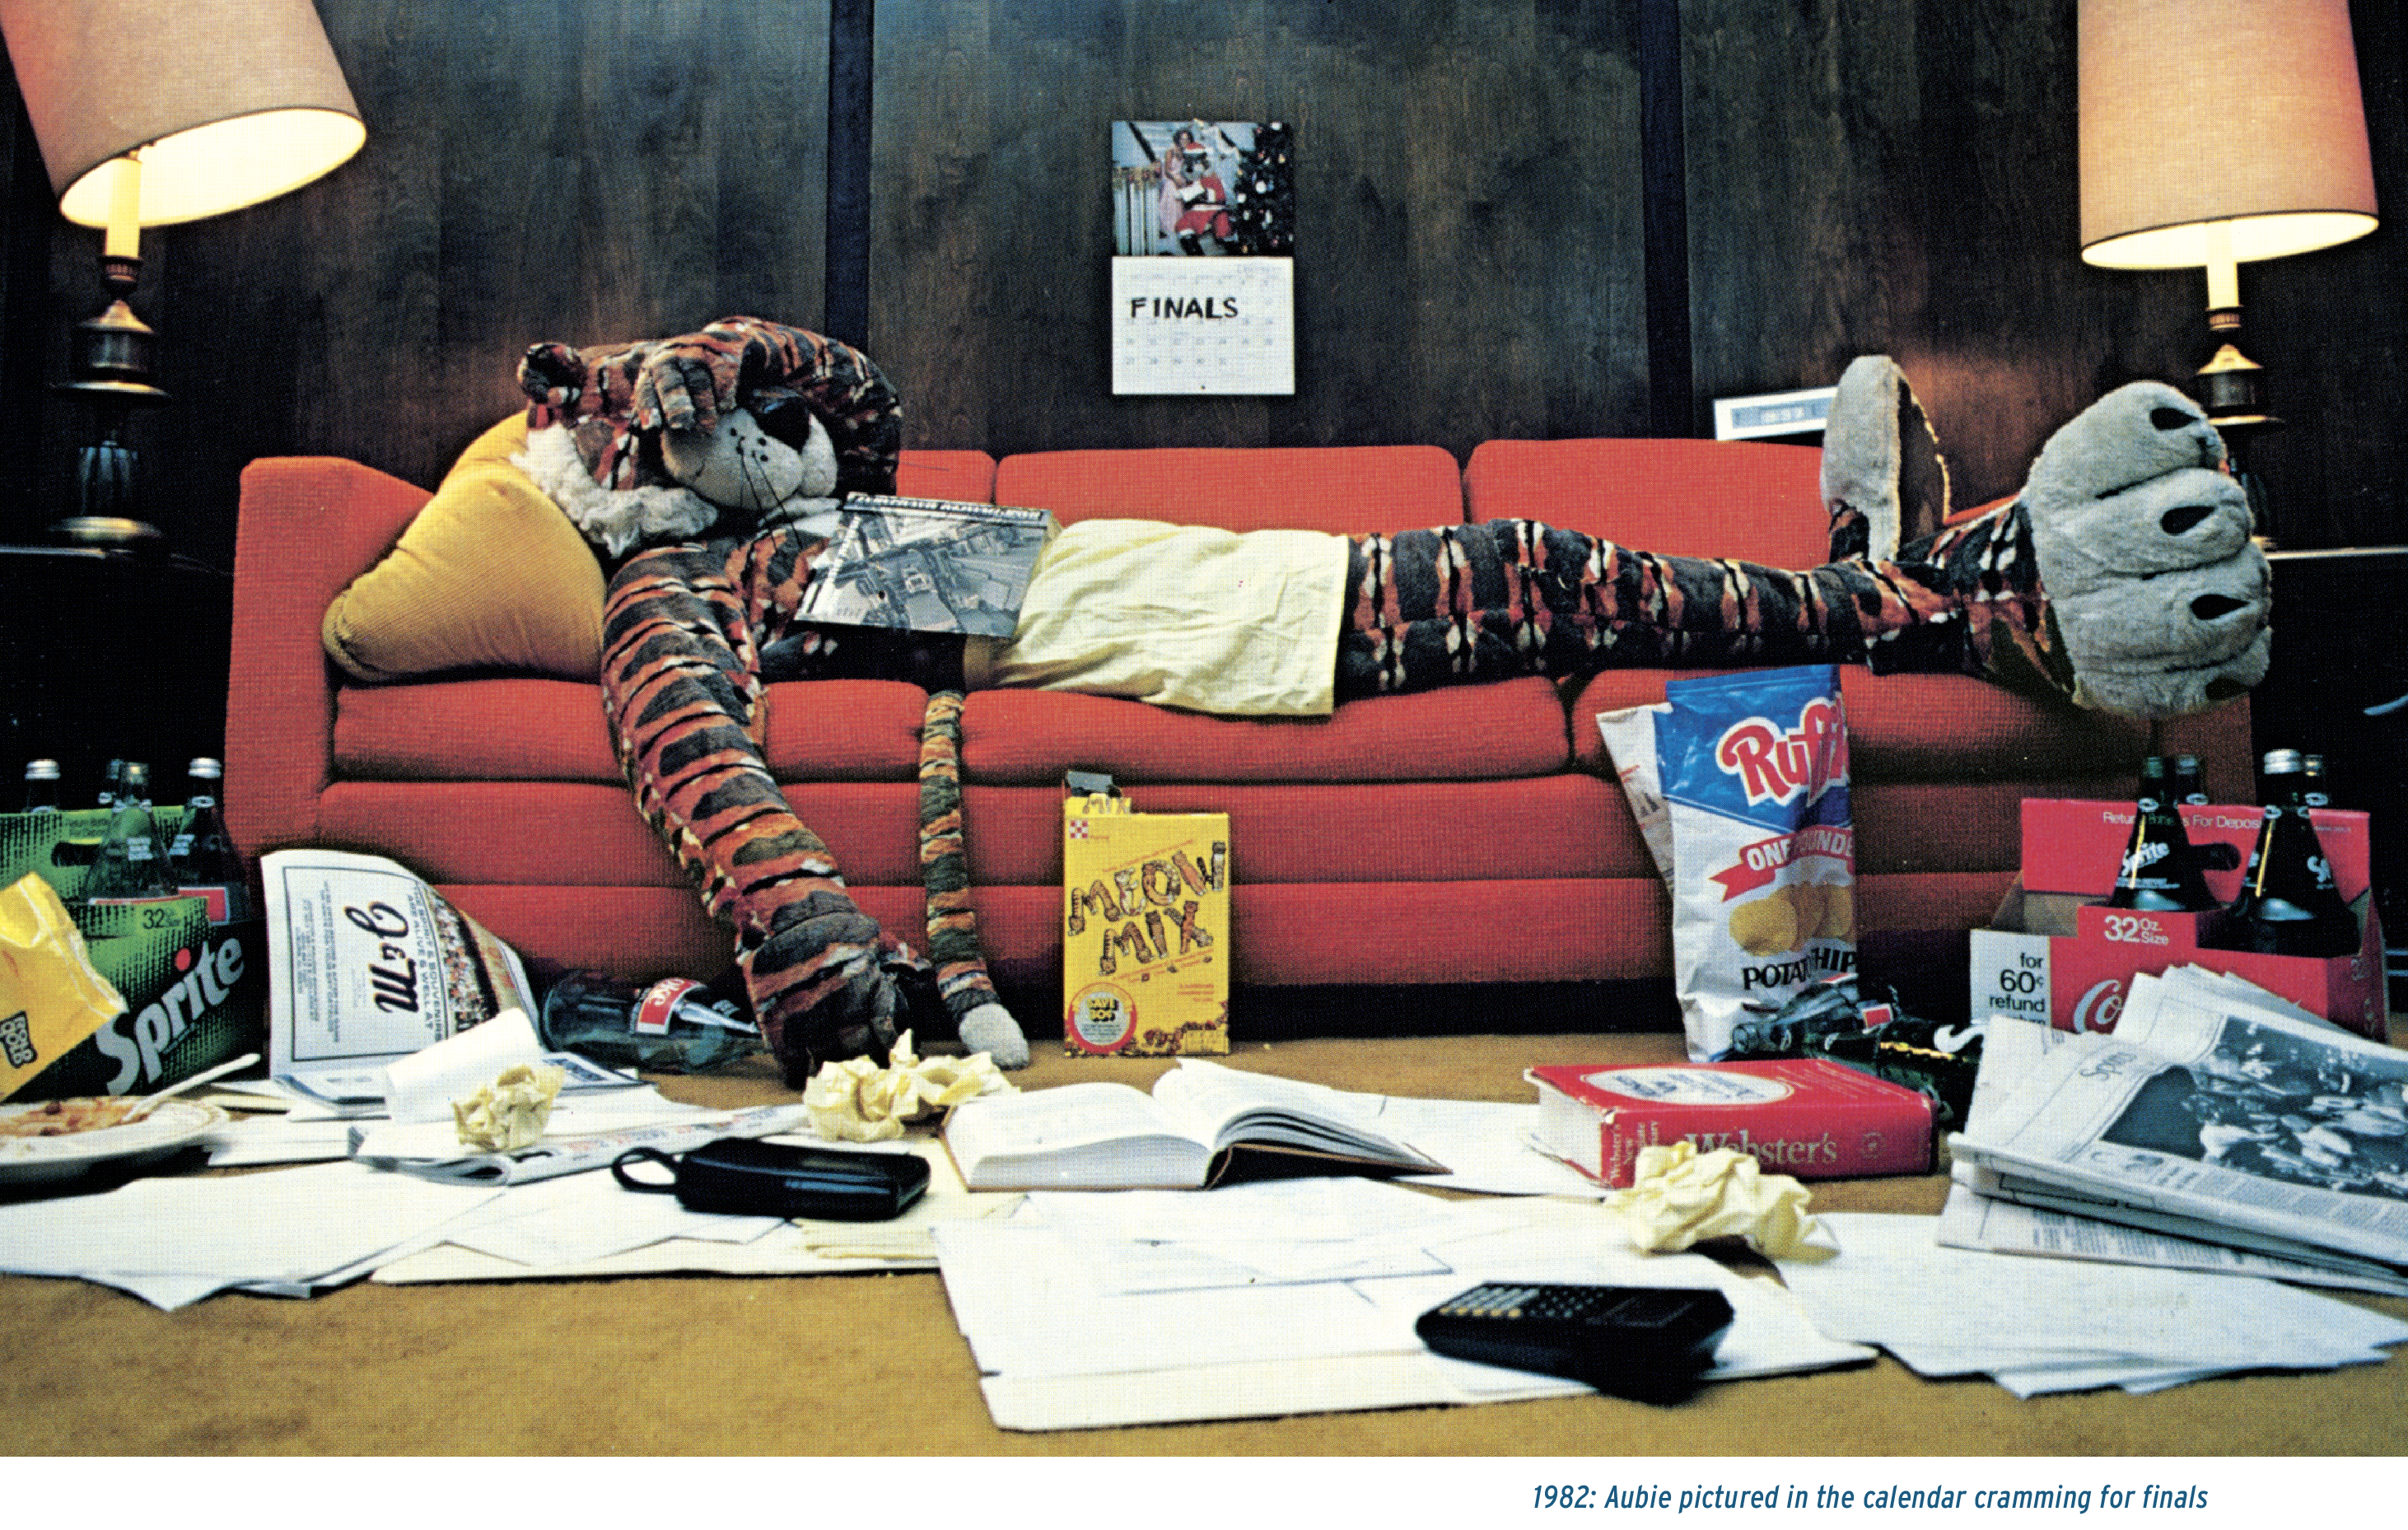 1982: Aubie pictured in the calendar cramming for finals